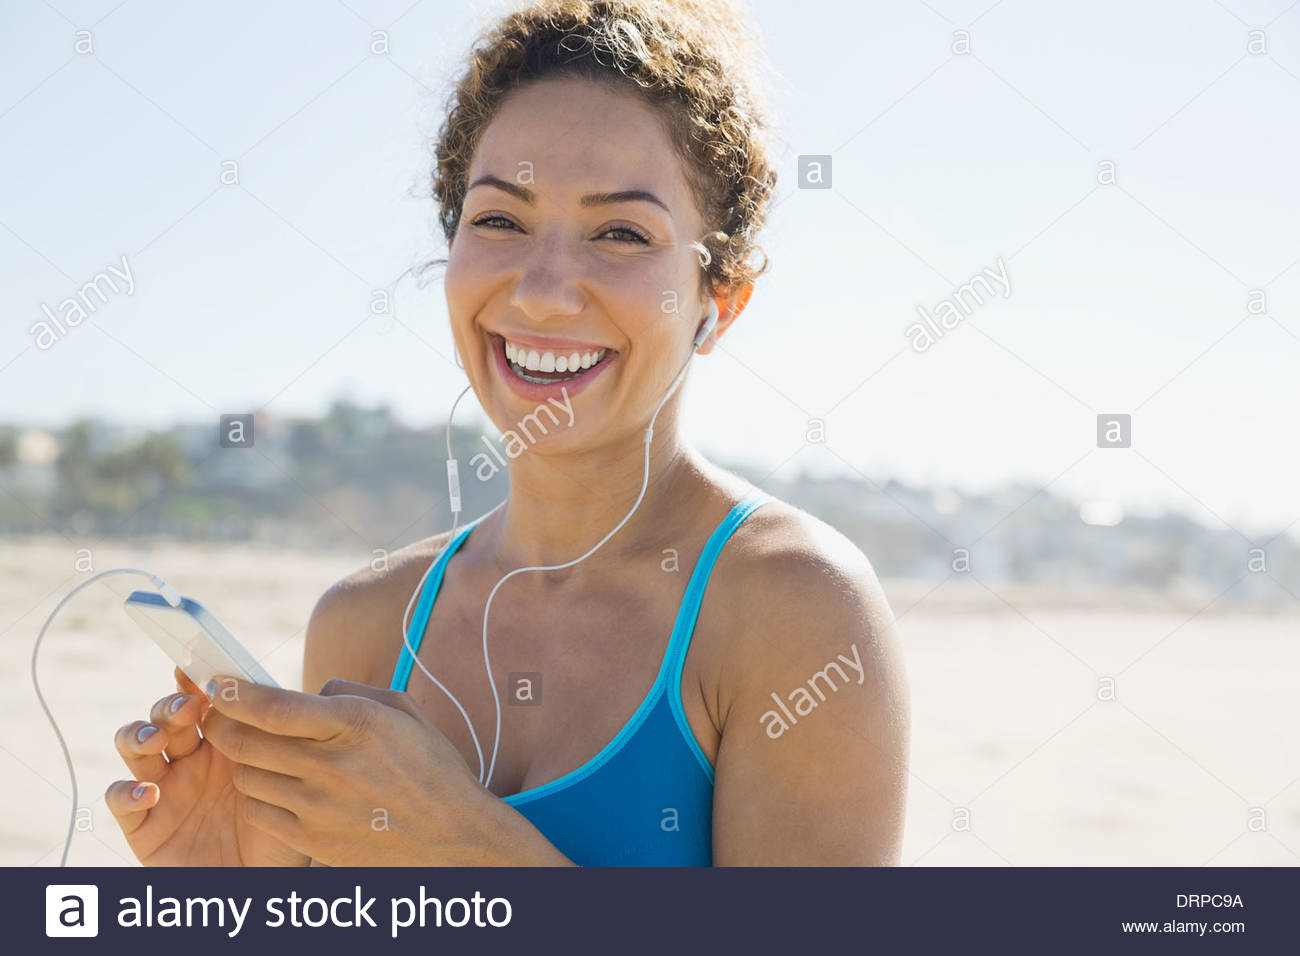 Portrait of active woman listening to music at beach - Stock Image